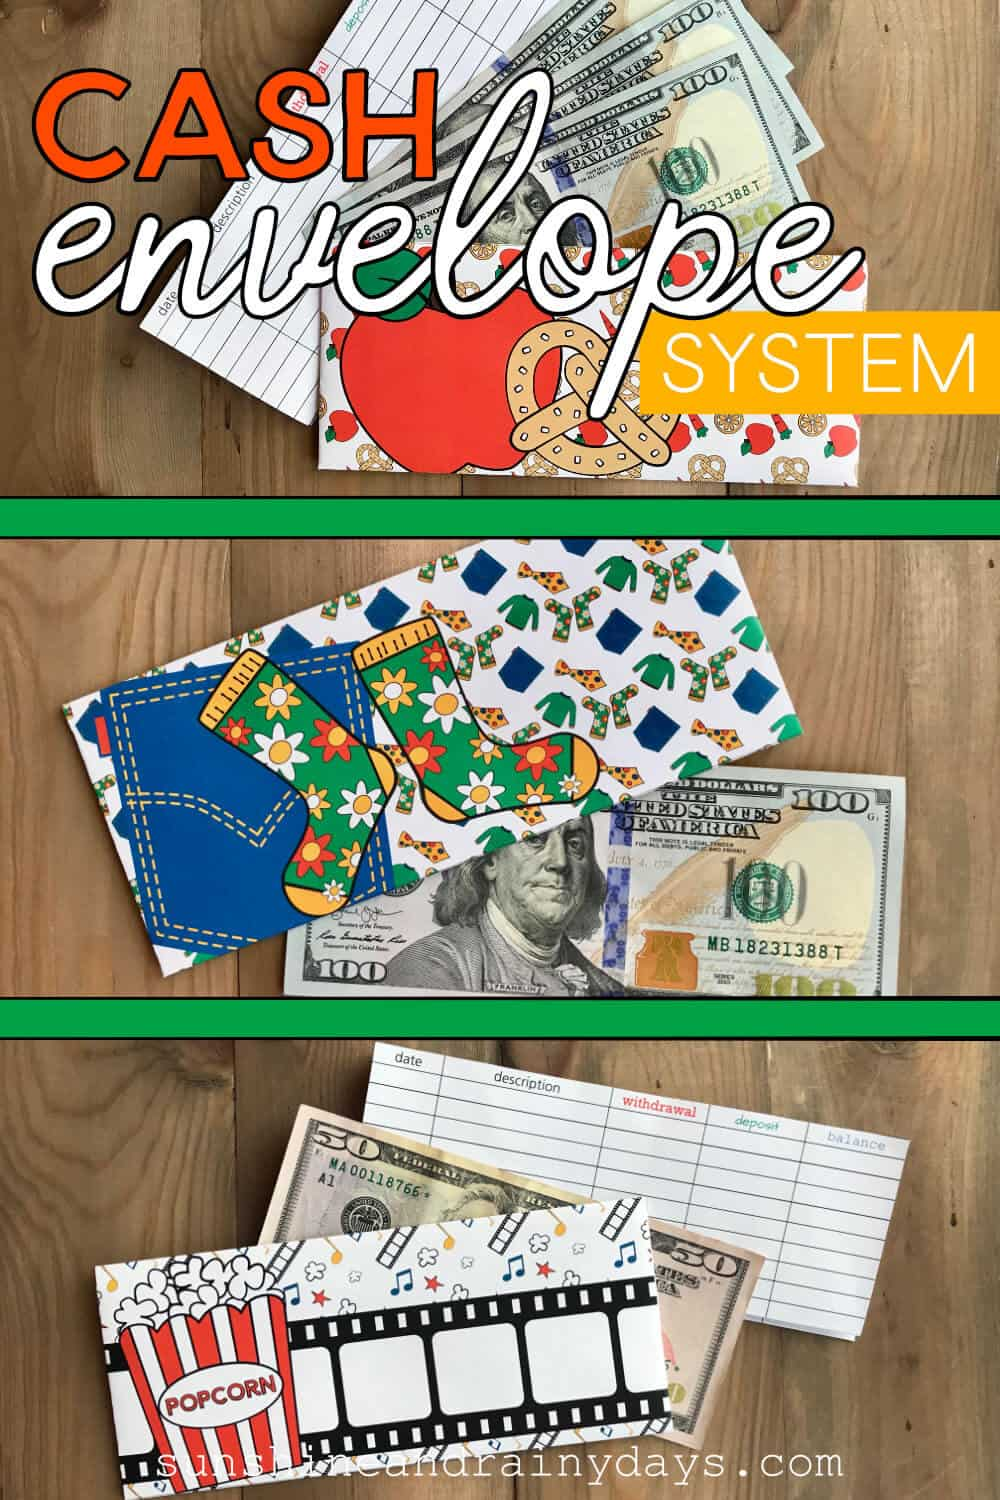 Cash Envelopes with cash and register and the words: Cash Envelope System